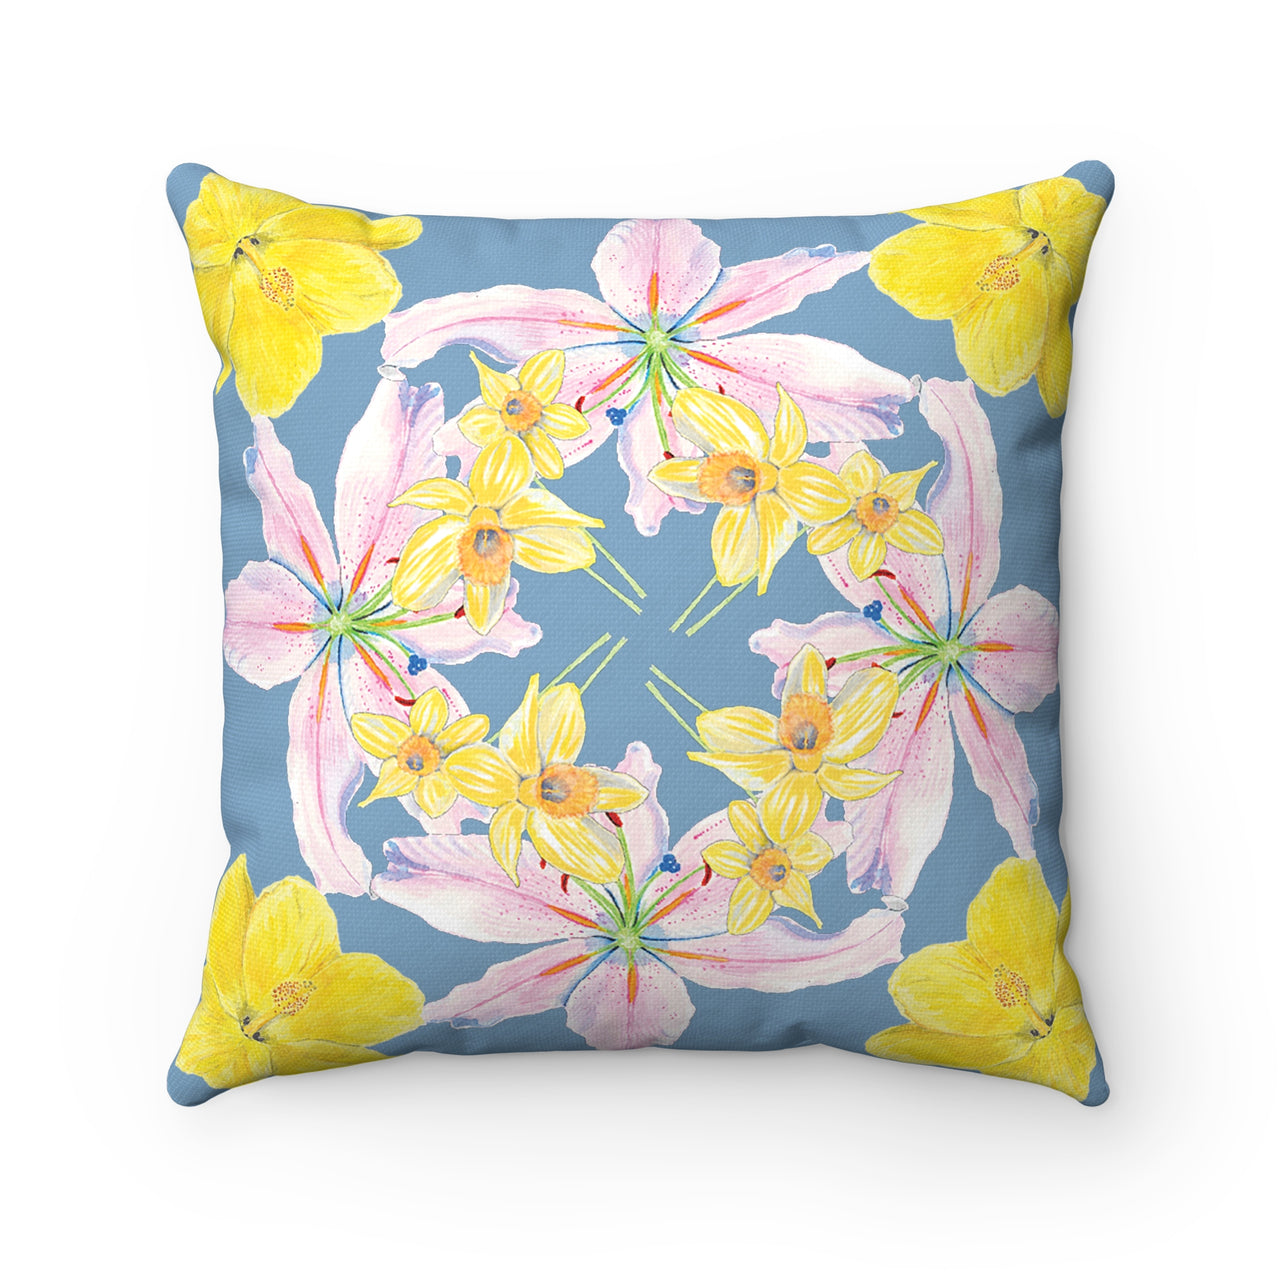 Pillow- Gray with Pink and Yellow Flowers - Square - Spun Polyester - Falling Leaf Card Co.